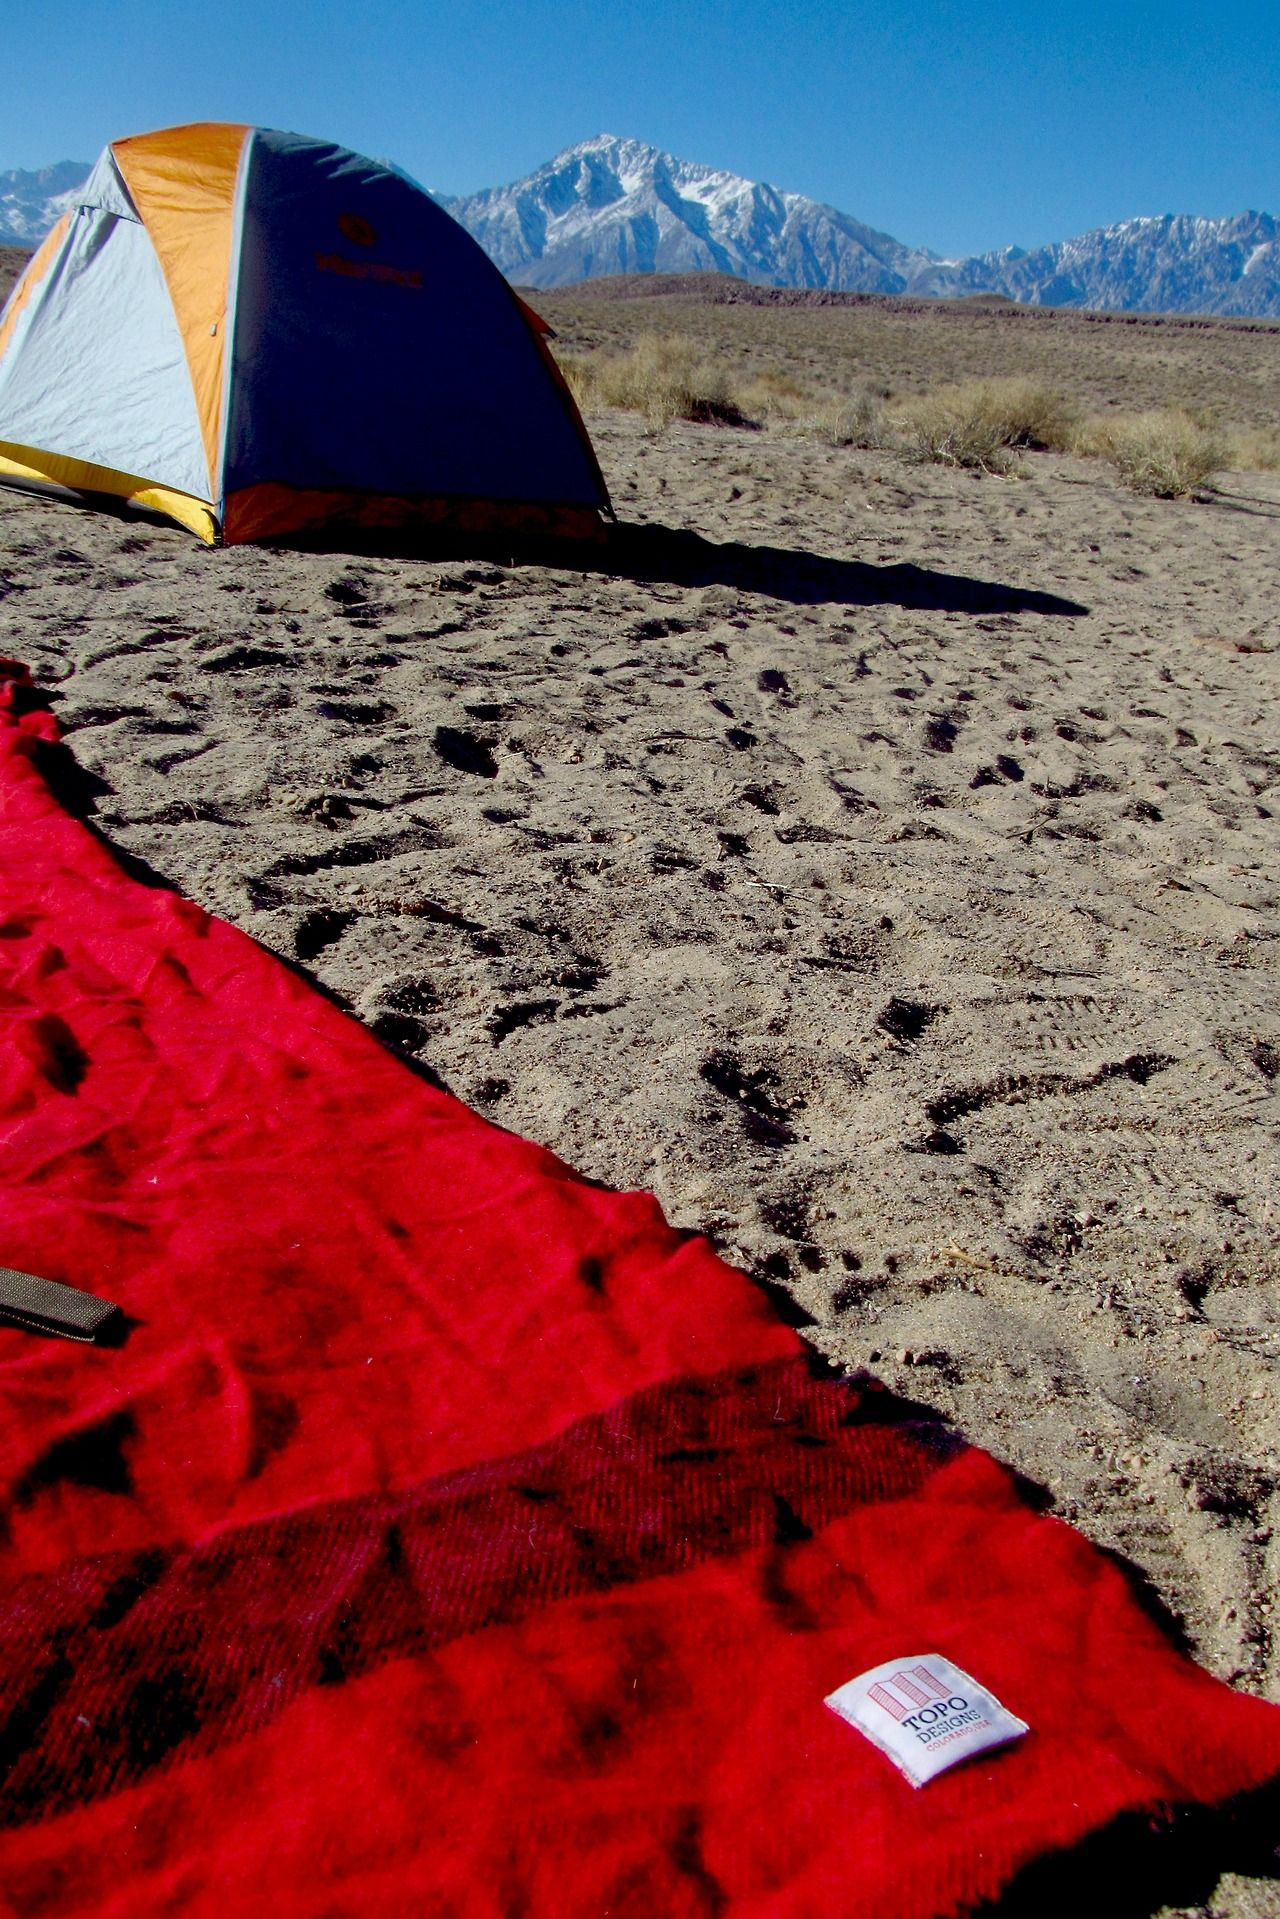 Topo Designs Camp Blanket